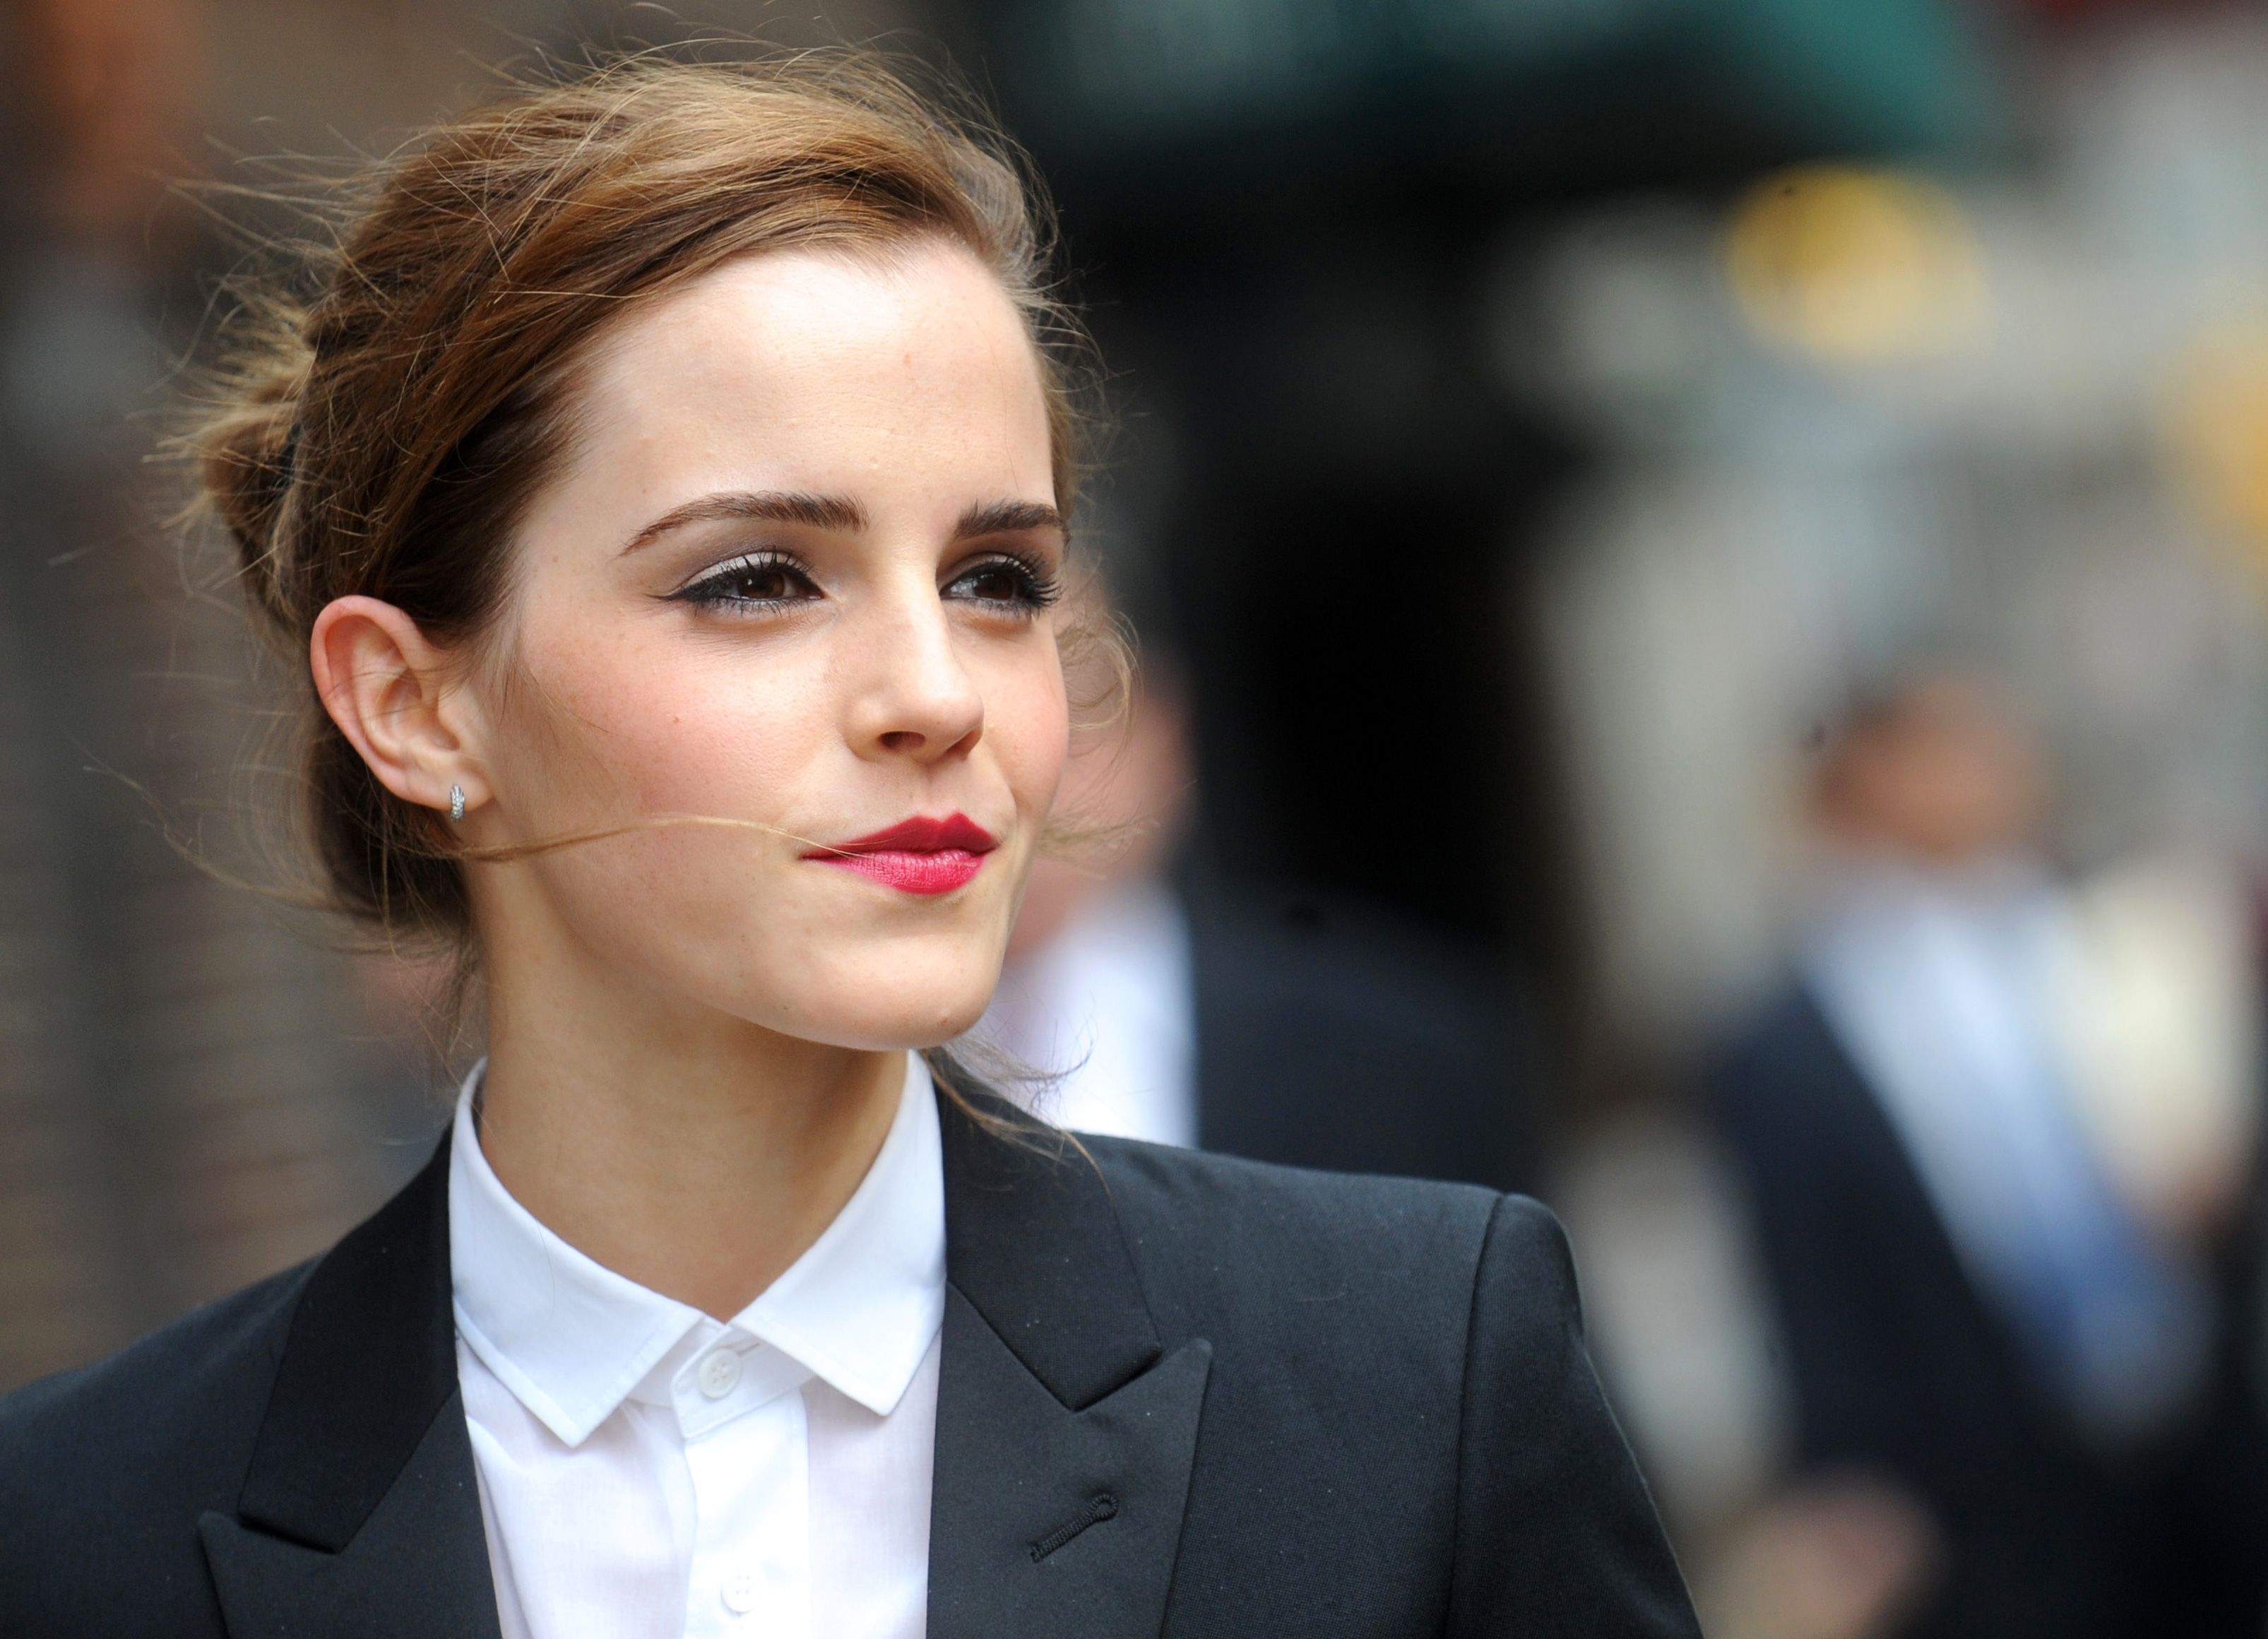 Emma Watson Says She's Finally 'Very Happy' Being Single: 'It Took Me a Long Time'